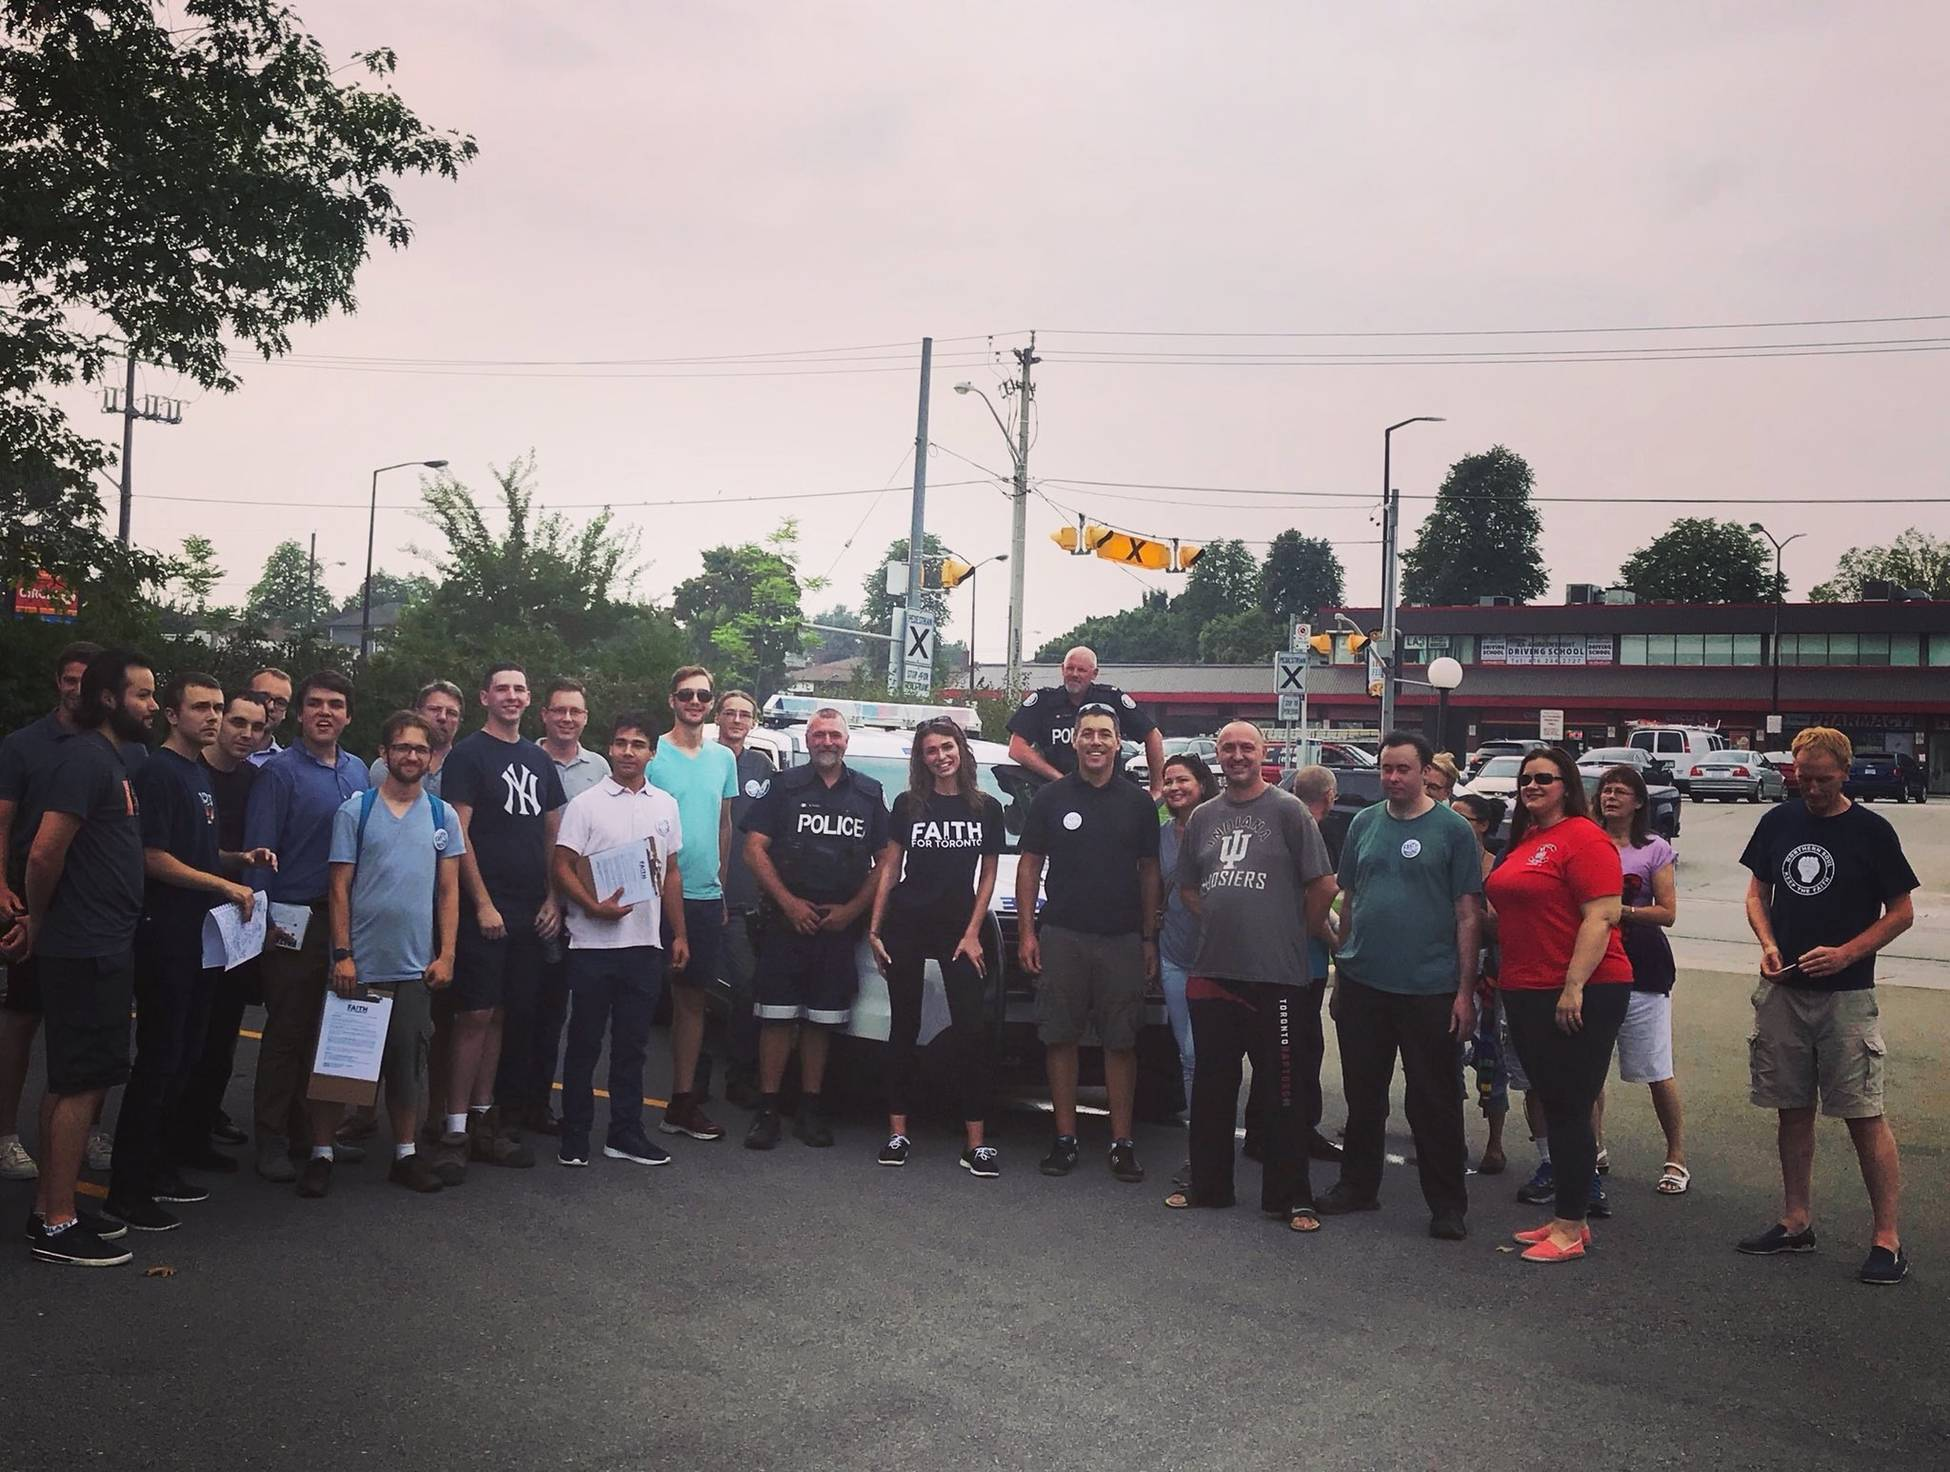 Uniformed Toronto police officers pose for campaign photograph with Faith Goldy